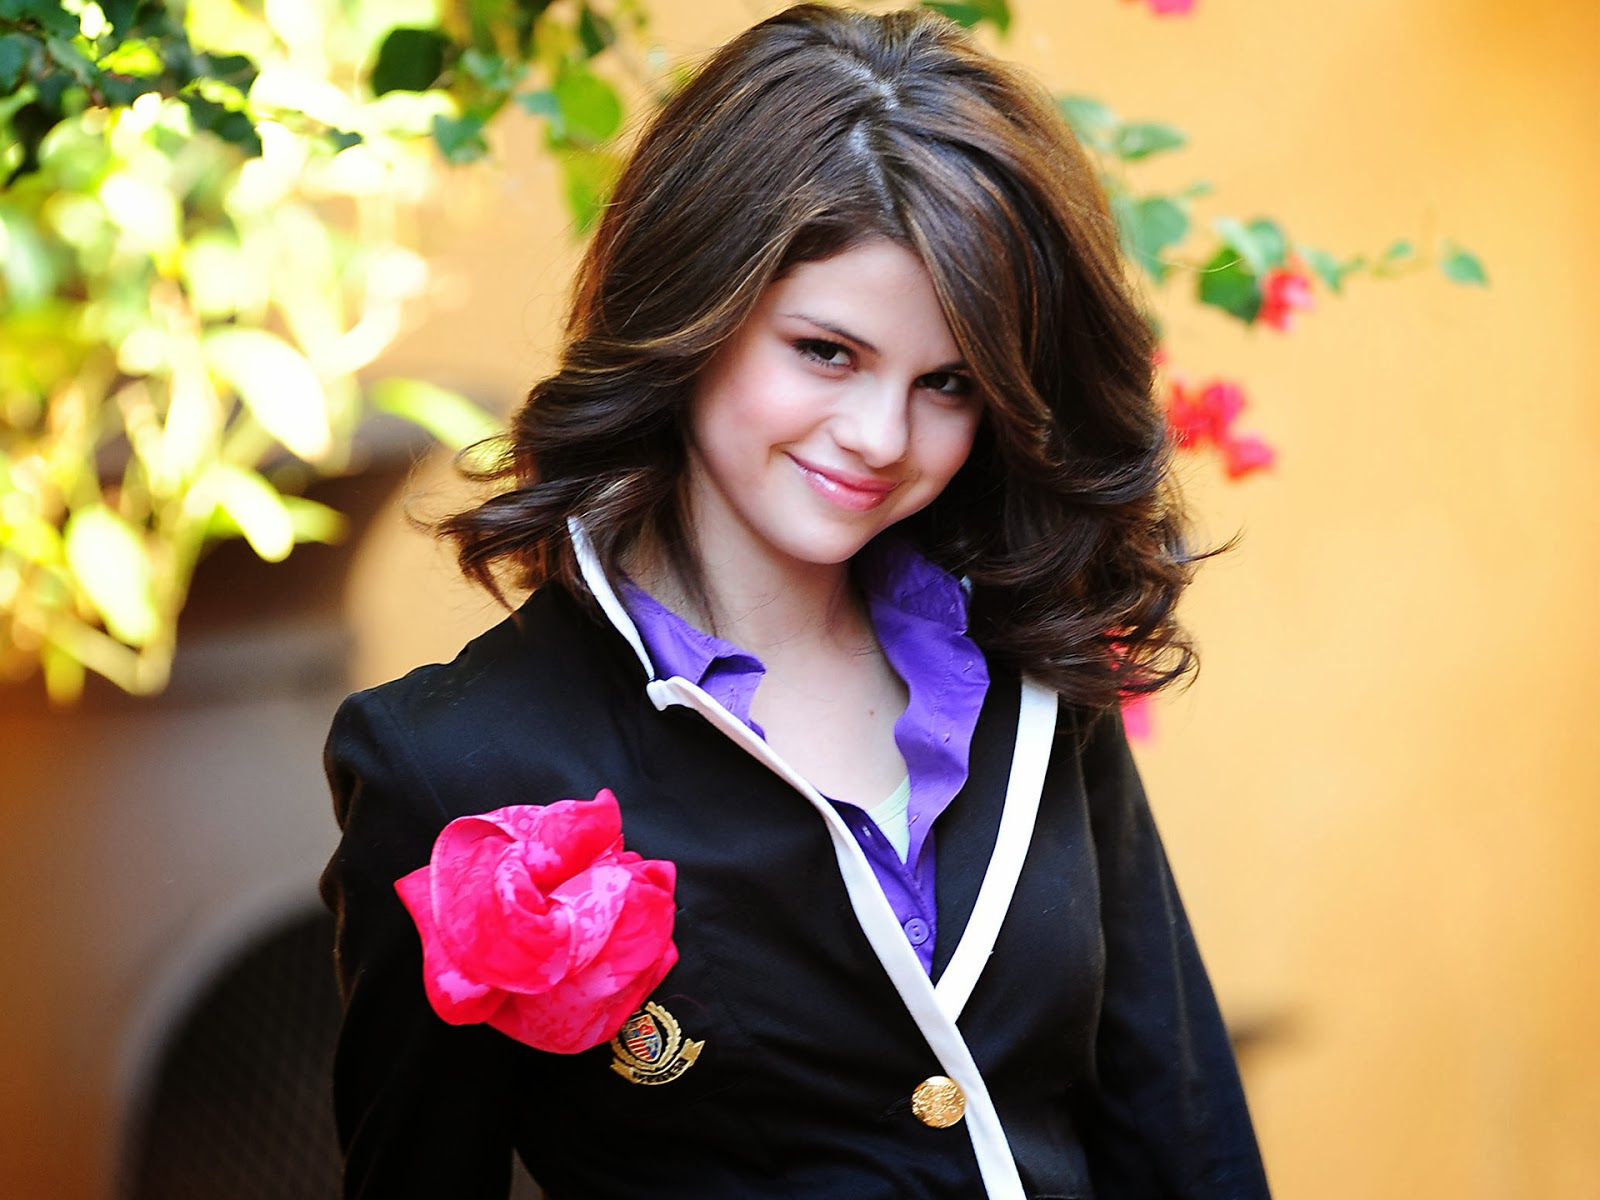 Selena Gomez Wallpaper 6854269